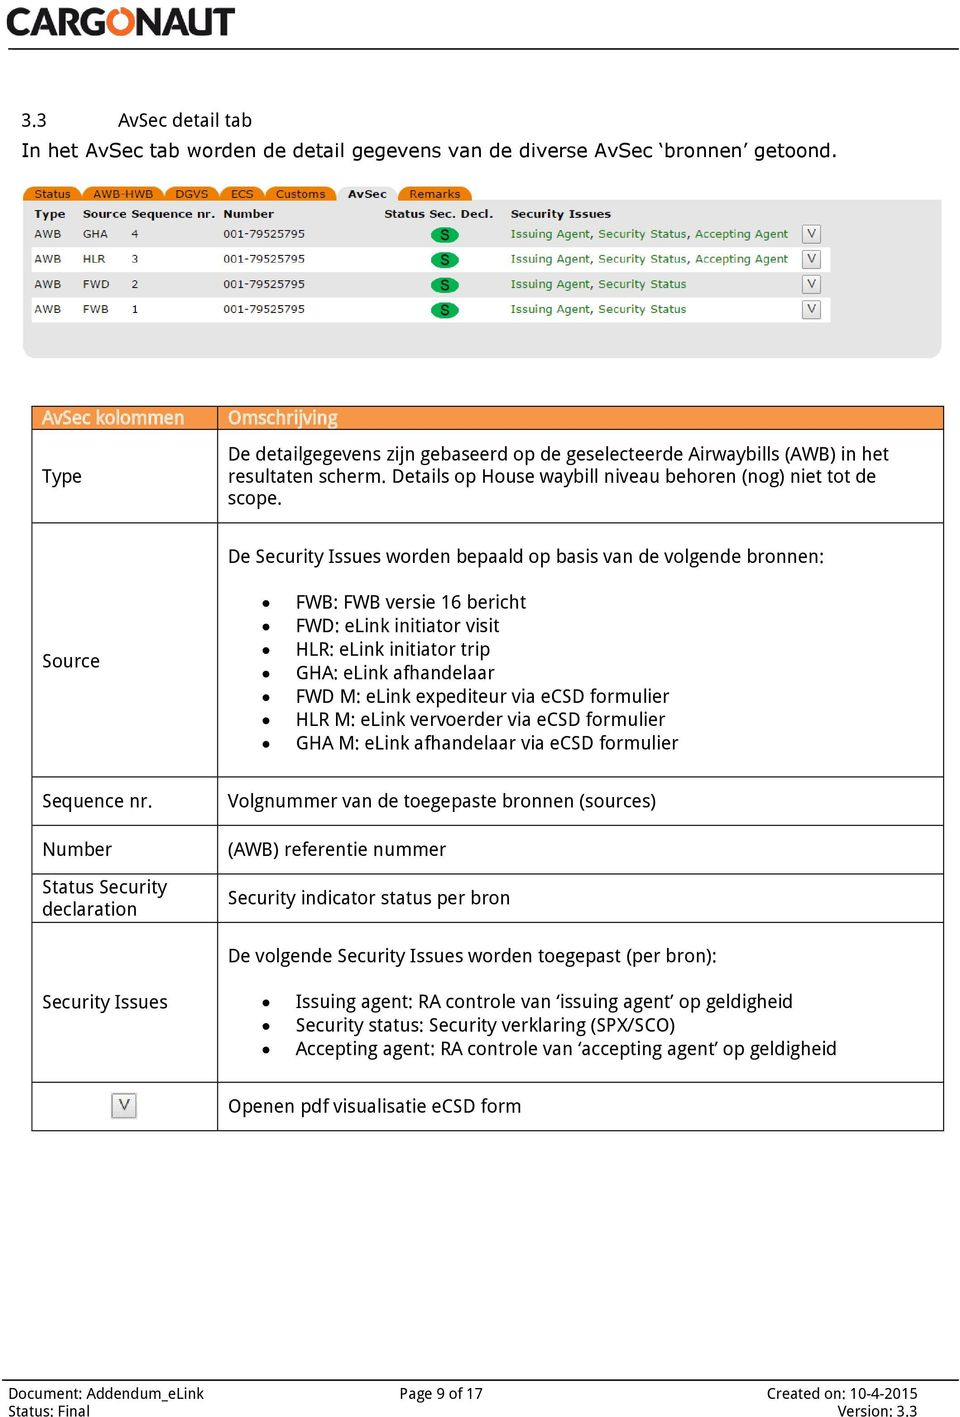 De Security Issues worde bepaald op basis va de volgede broe: Source FWB: FWB versie 16 bericht FWD: elik iitiator visit HLR: elik iitiator trip GHA: elik afhadelaar FWD M: elik expediteur via ecsd